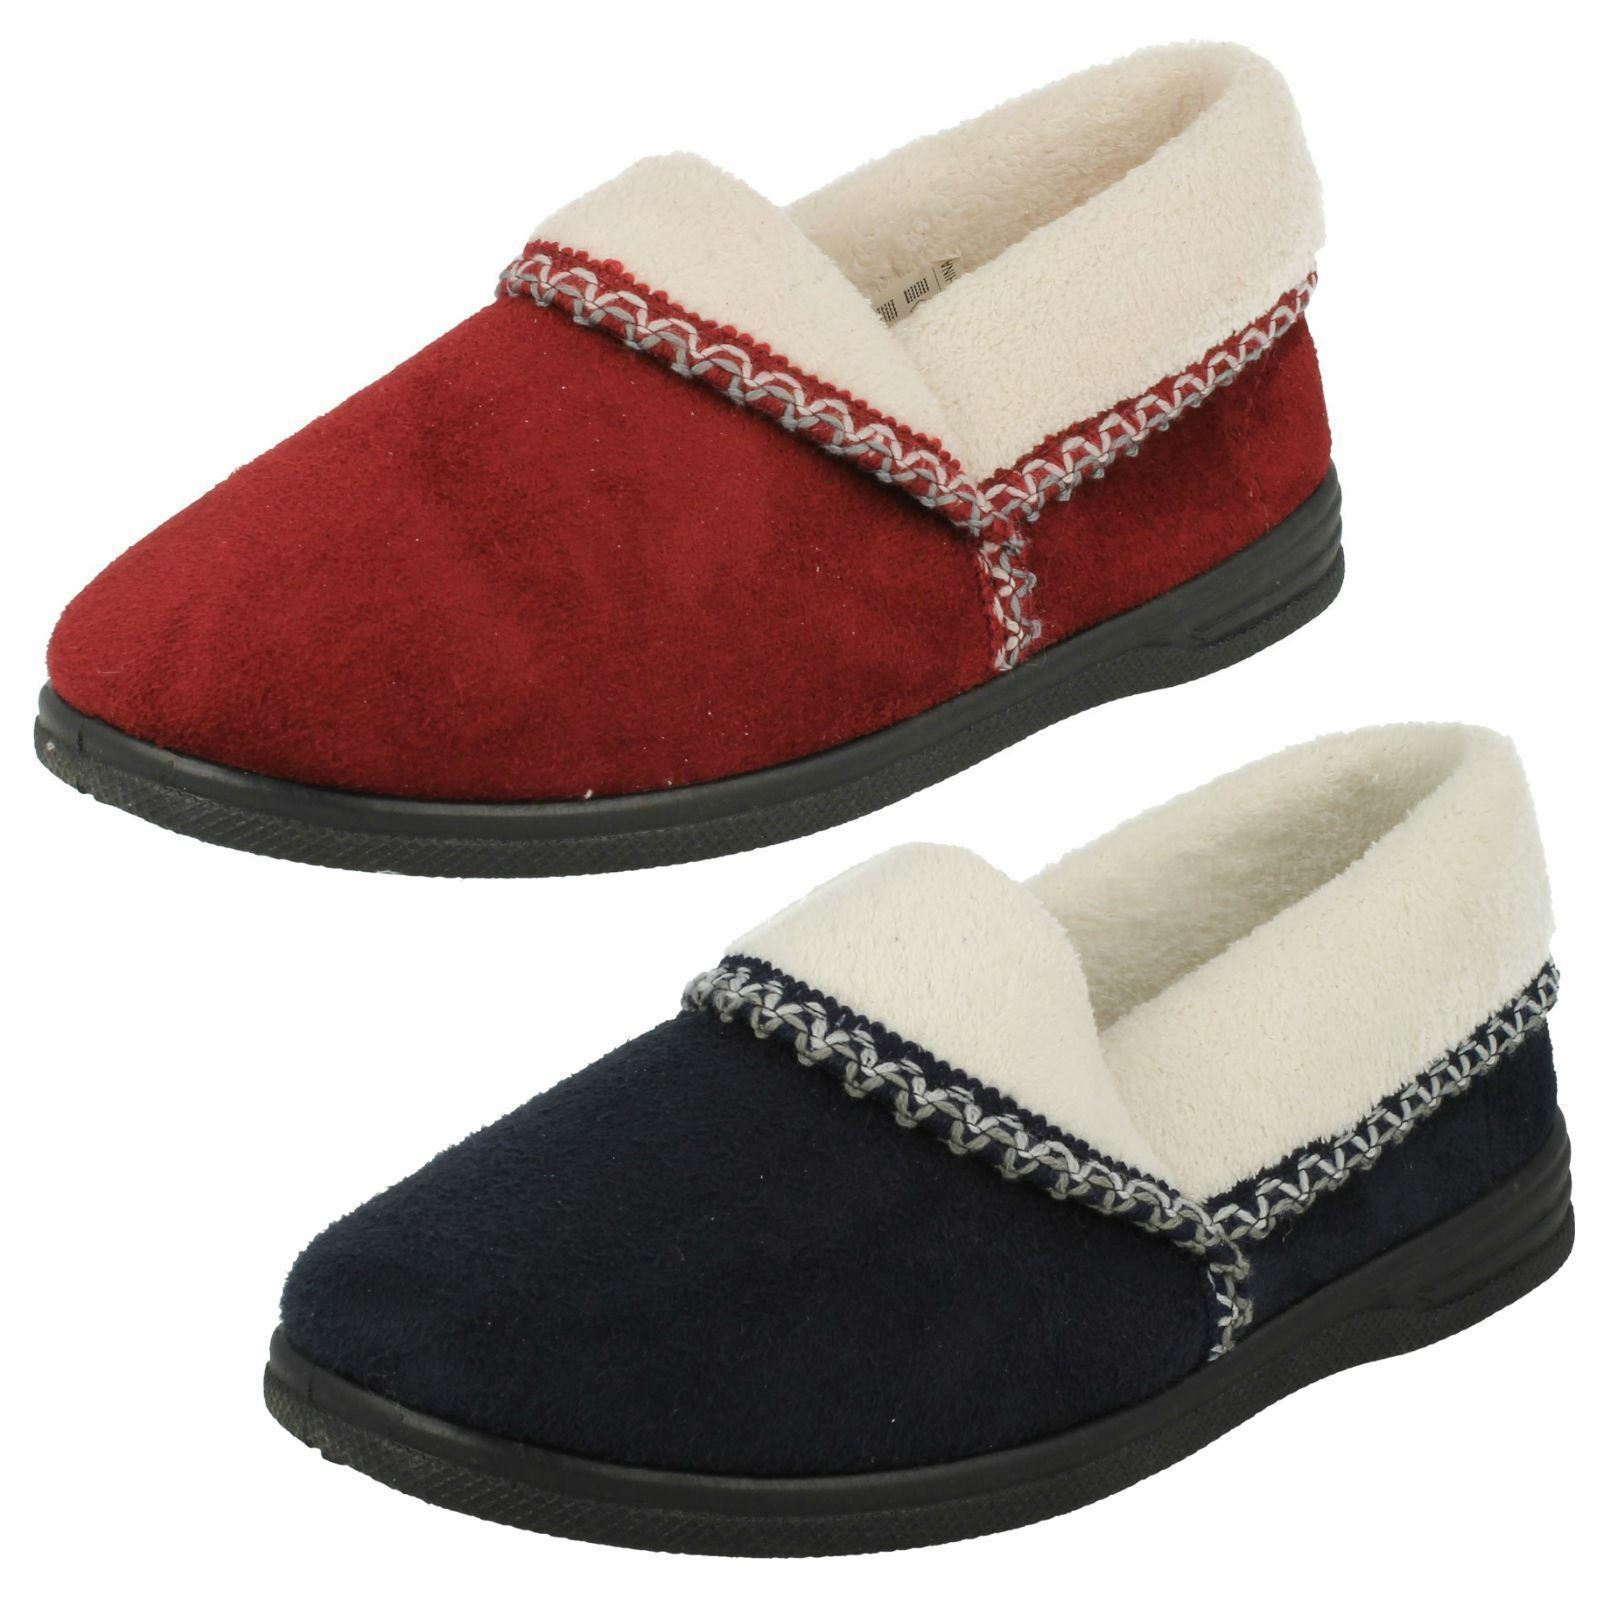 LADIES SANDPIPER ILA ROUND TOE SLIP ON CASUAL INDOOR HOUSE SLIPPERS SHOES